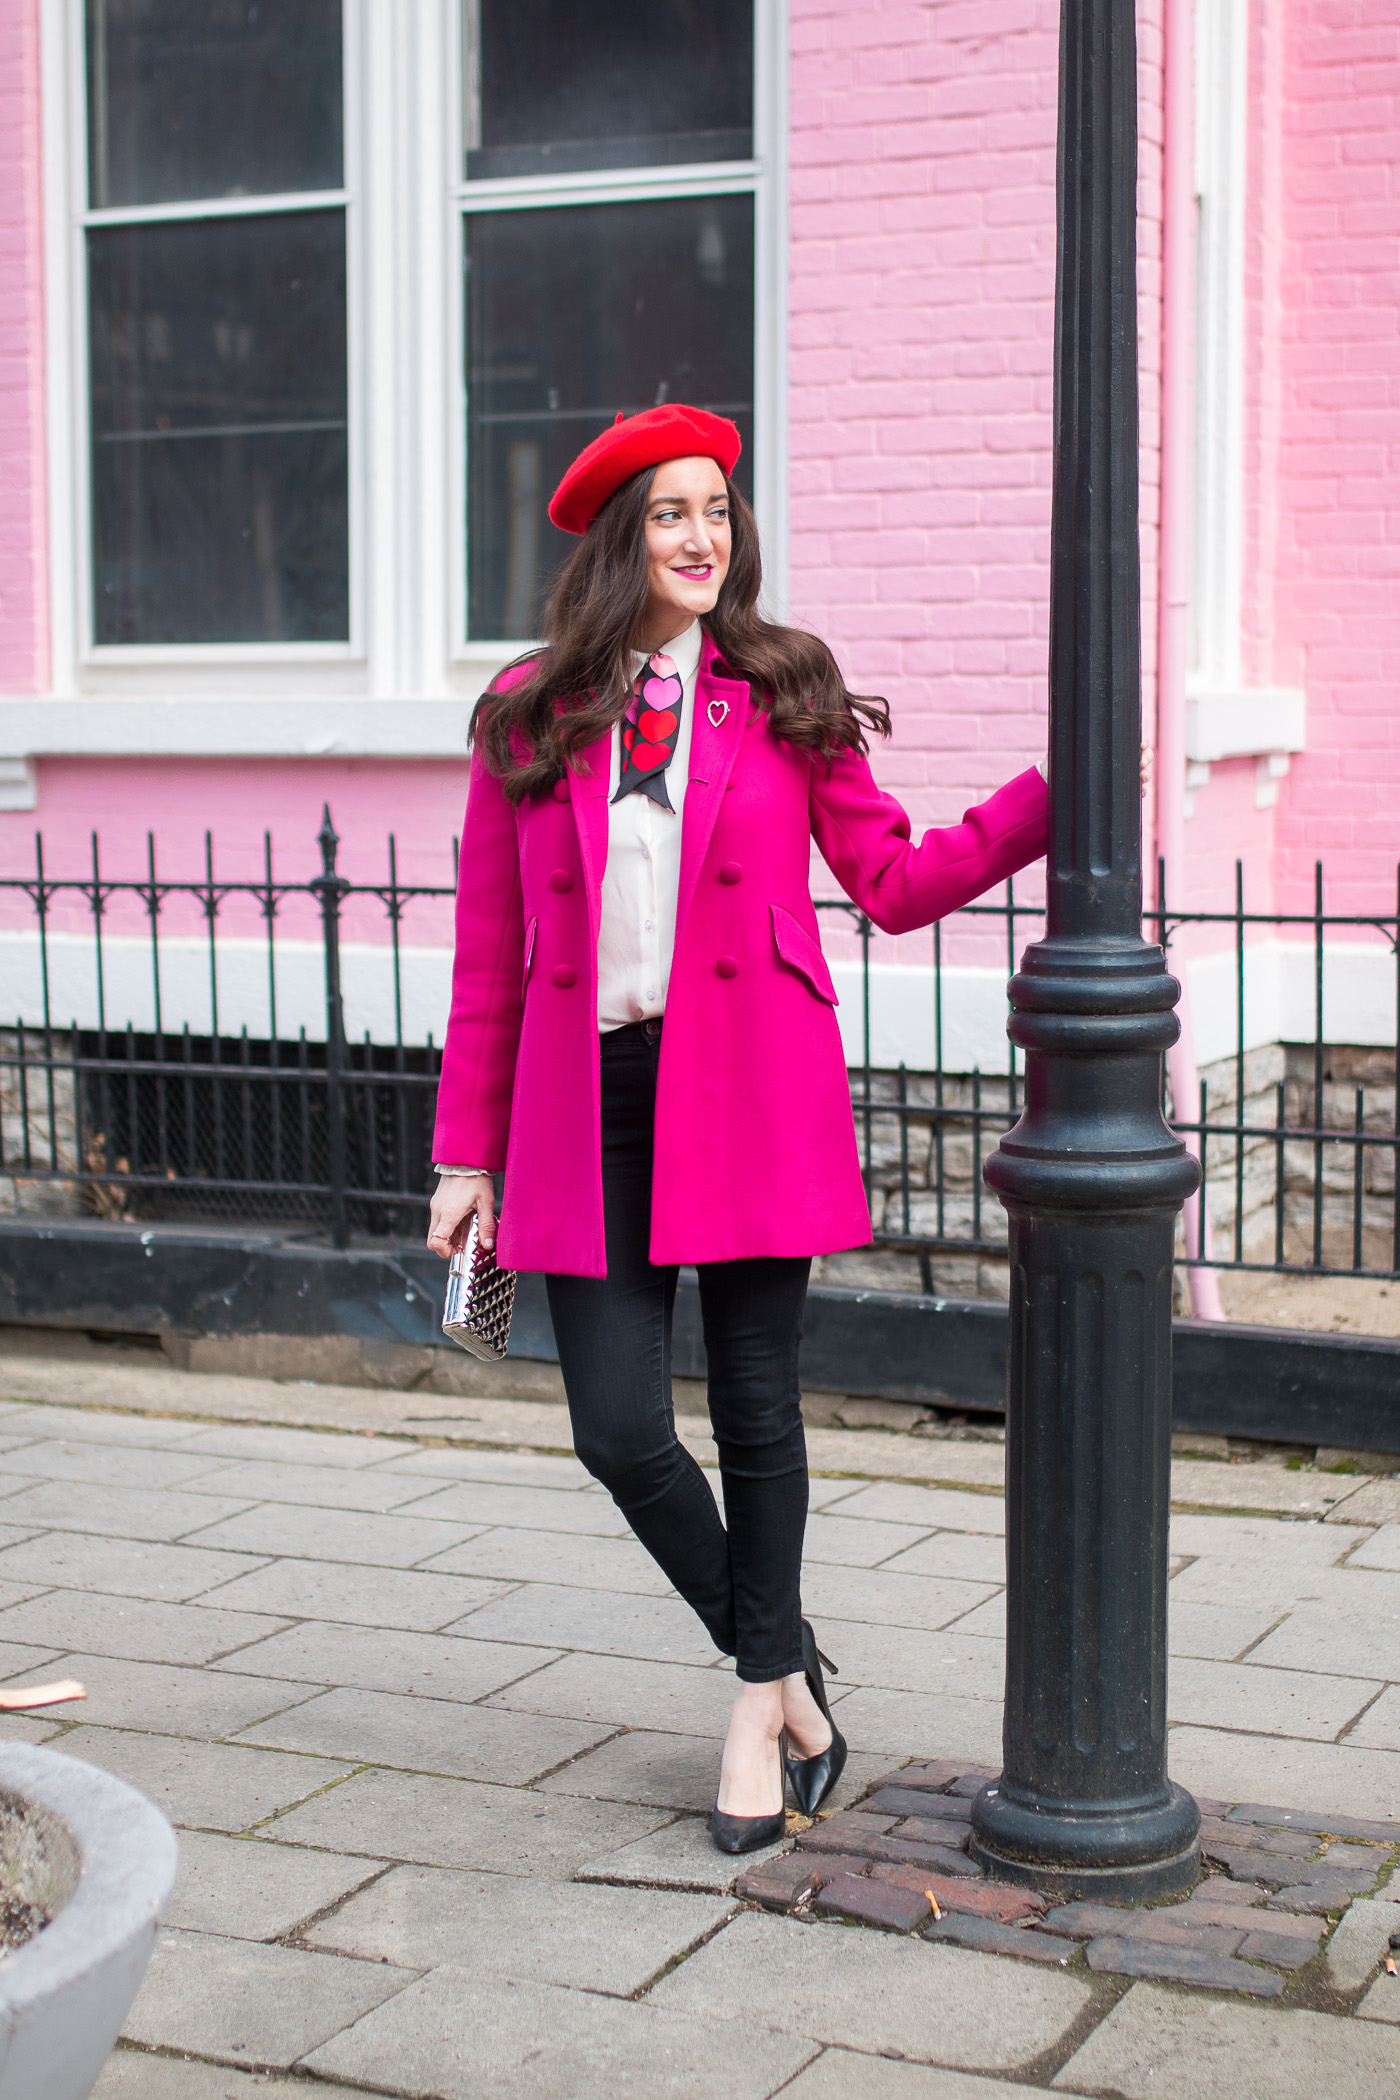 Red beret with pink coat